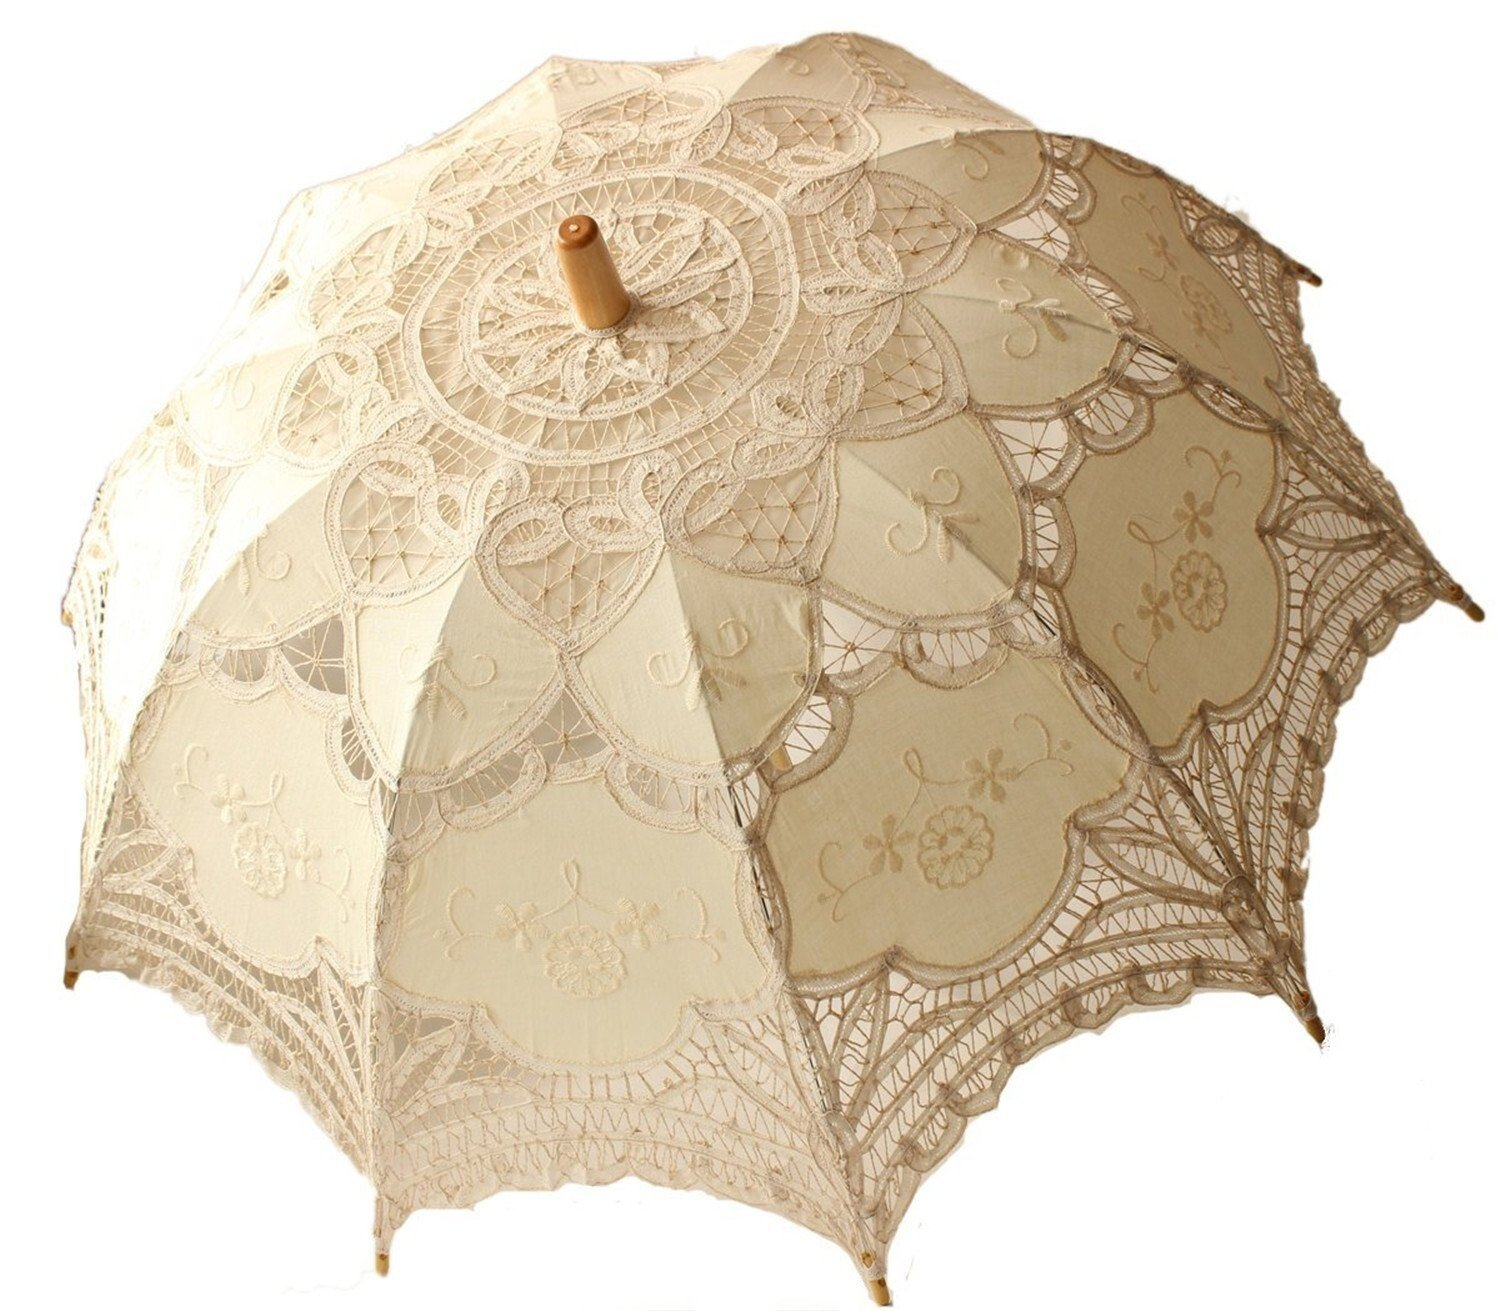 Tinksky Lace Umbrella Parasol Romantic Wedding Umbrella Photograph (Ivory)